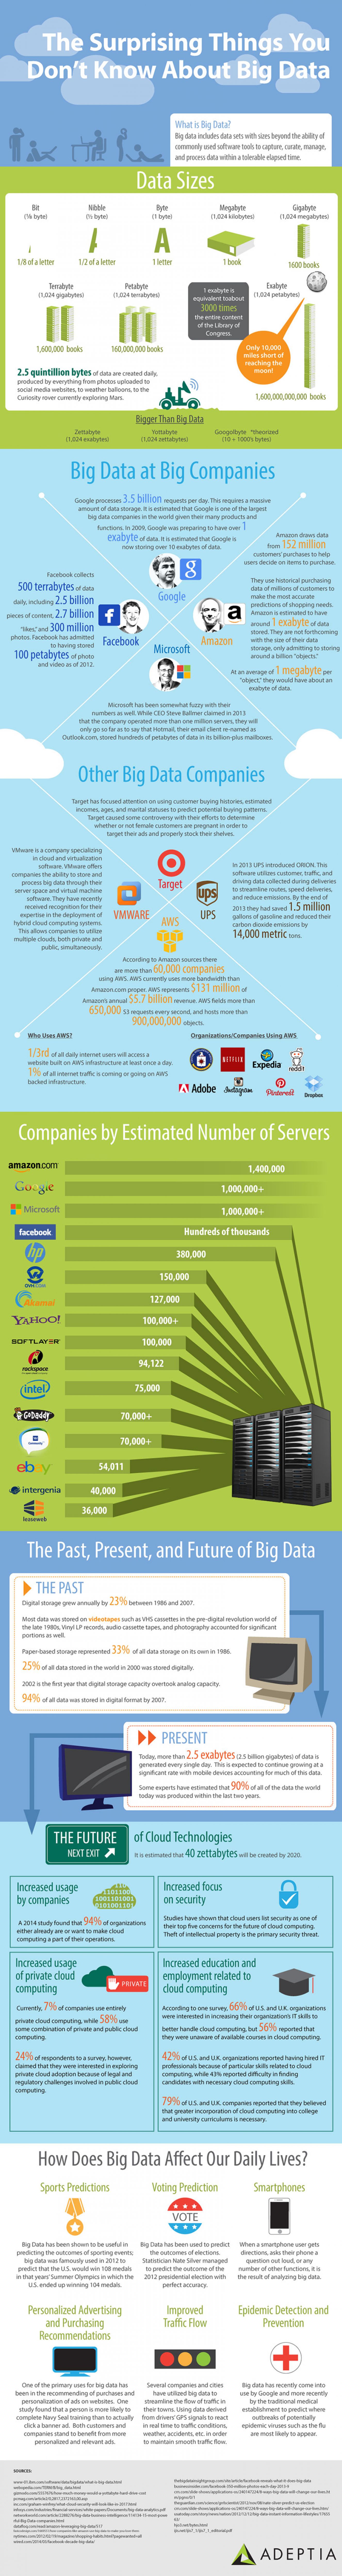 The Surprising Things You Don't Know About Big Data Infographic